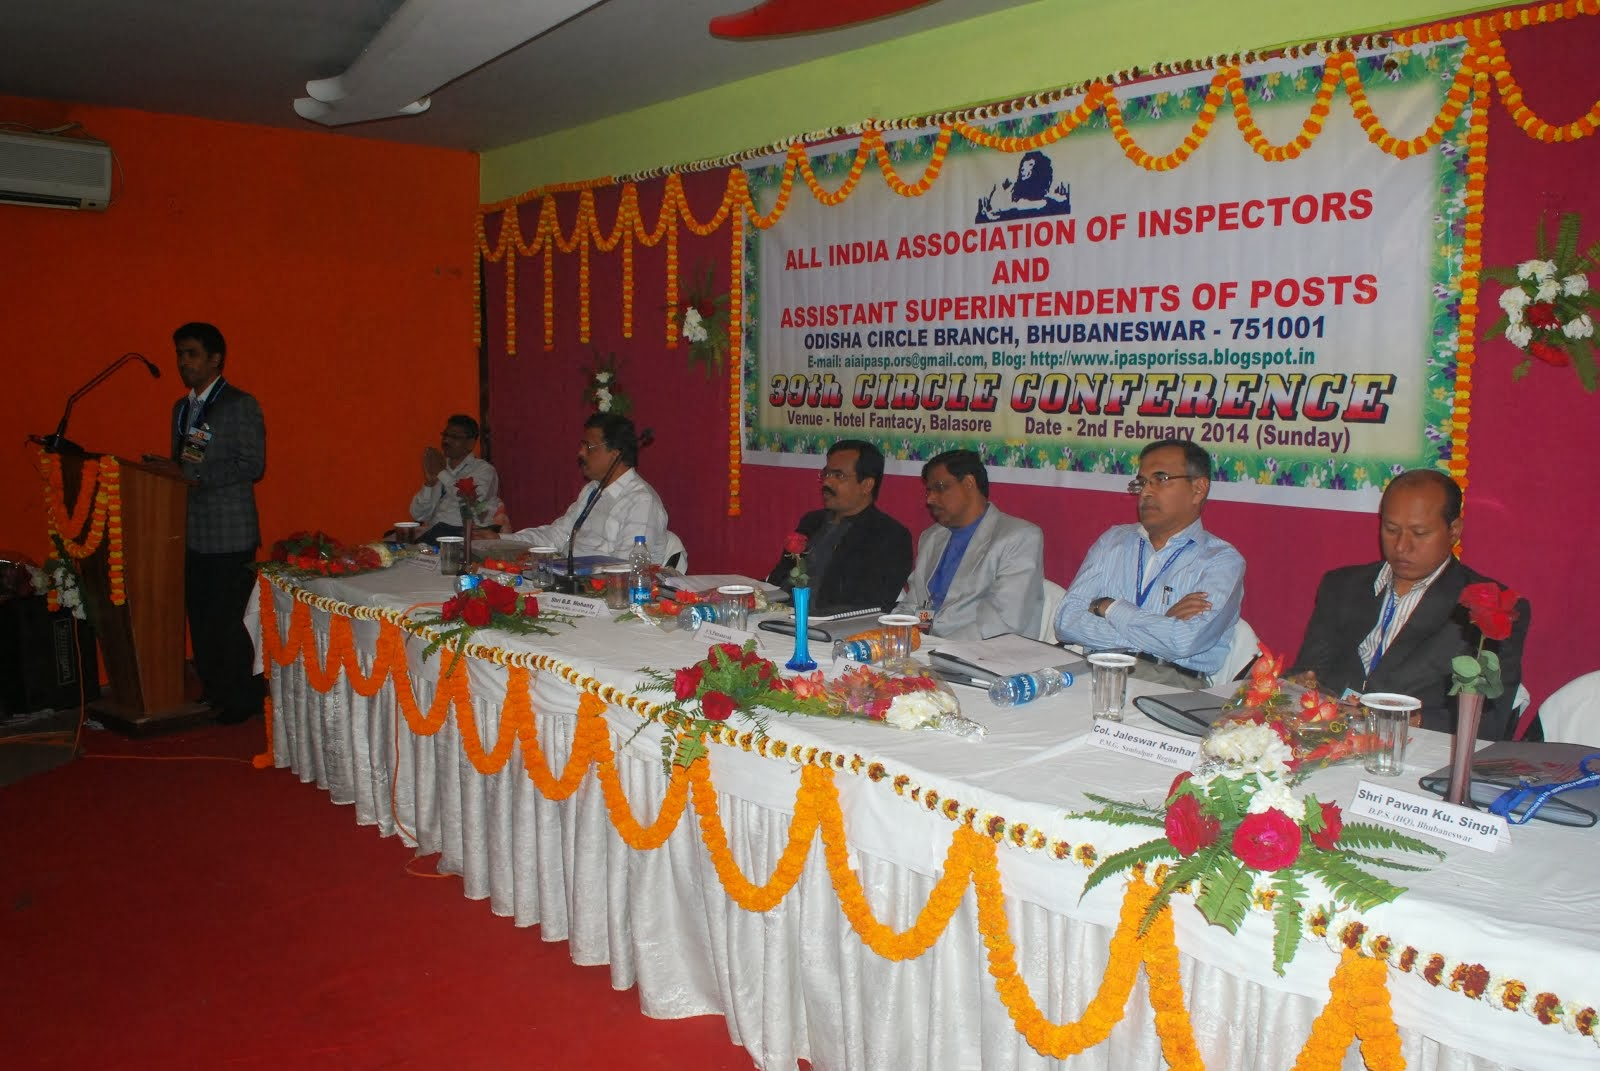 39th Circle Conference held on 02-02-2014 at Balasore